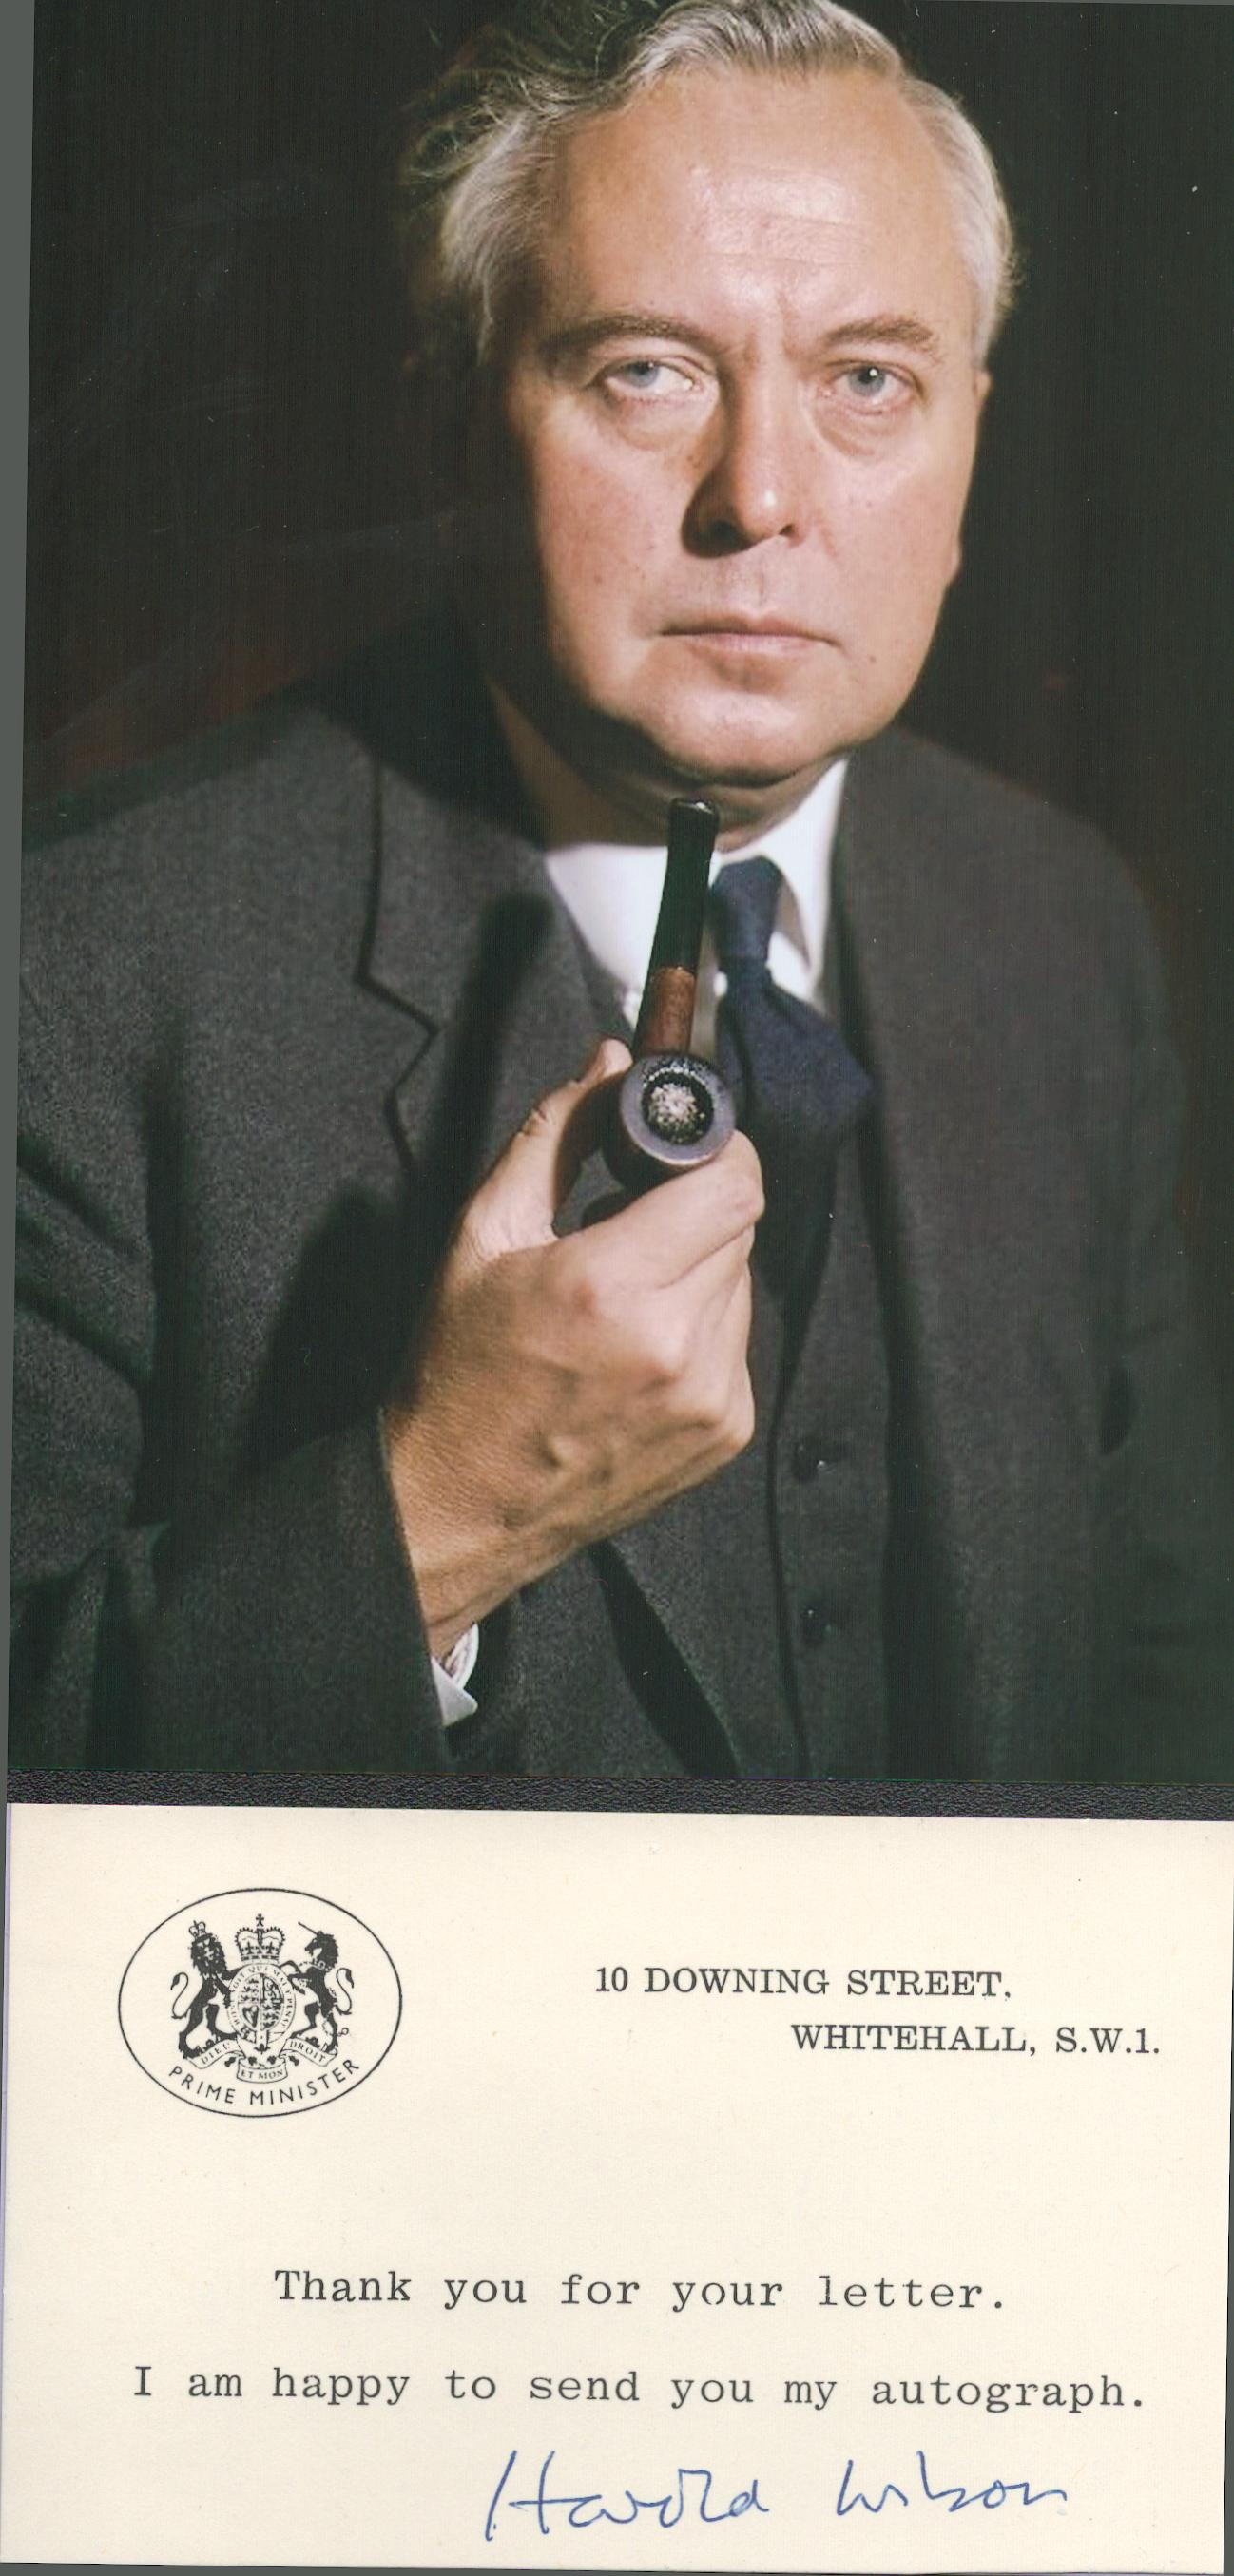 Harold Wilson (1916-1995) British Prime Minister Signed 10 Downing Street Card With Photo. Good